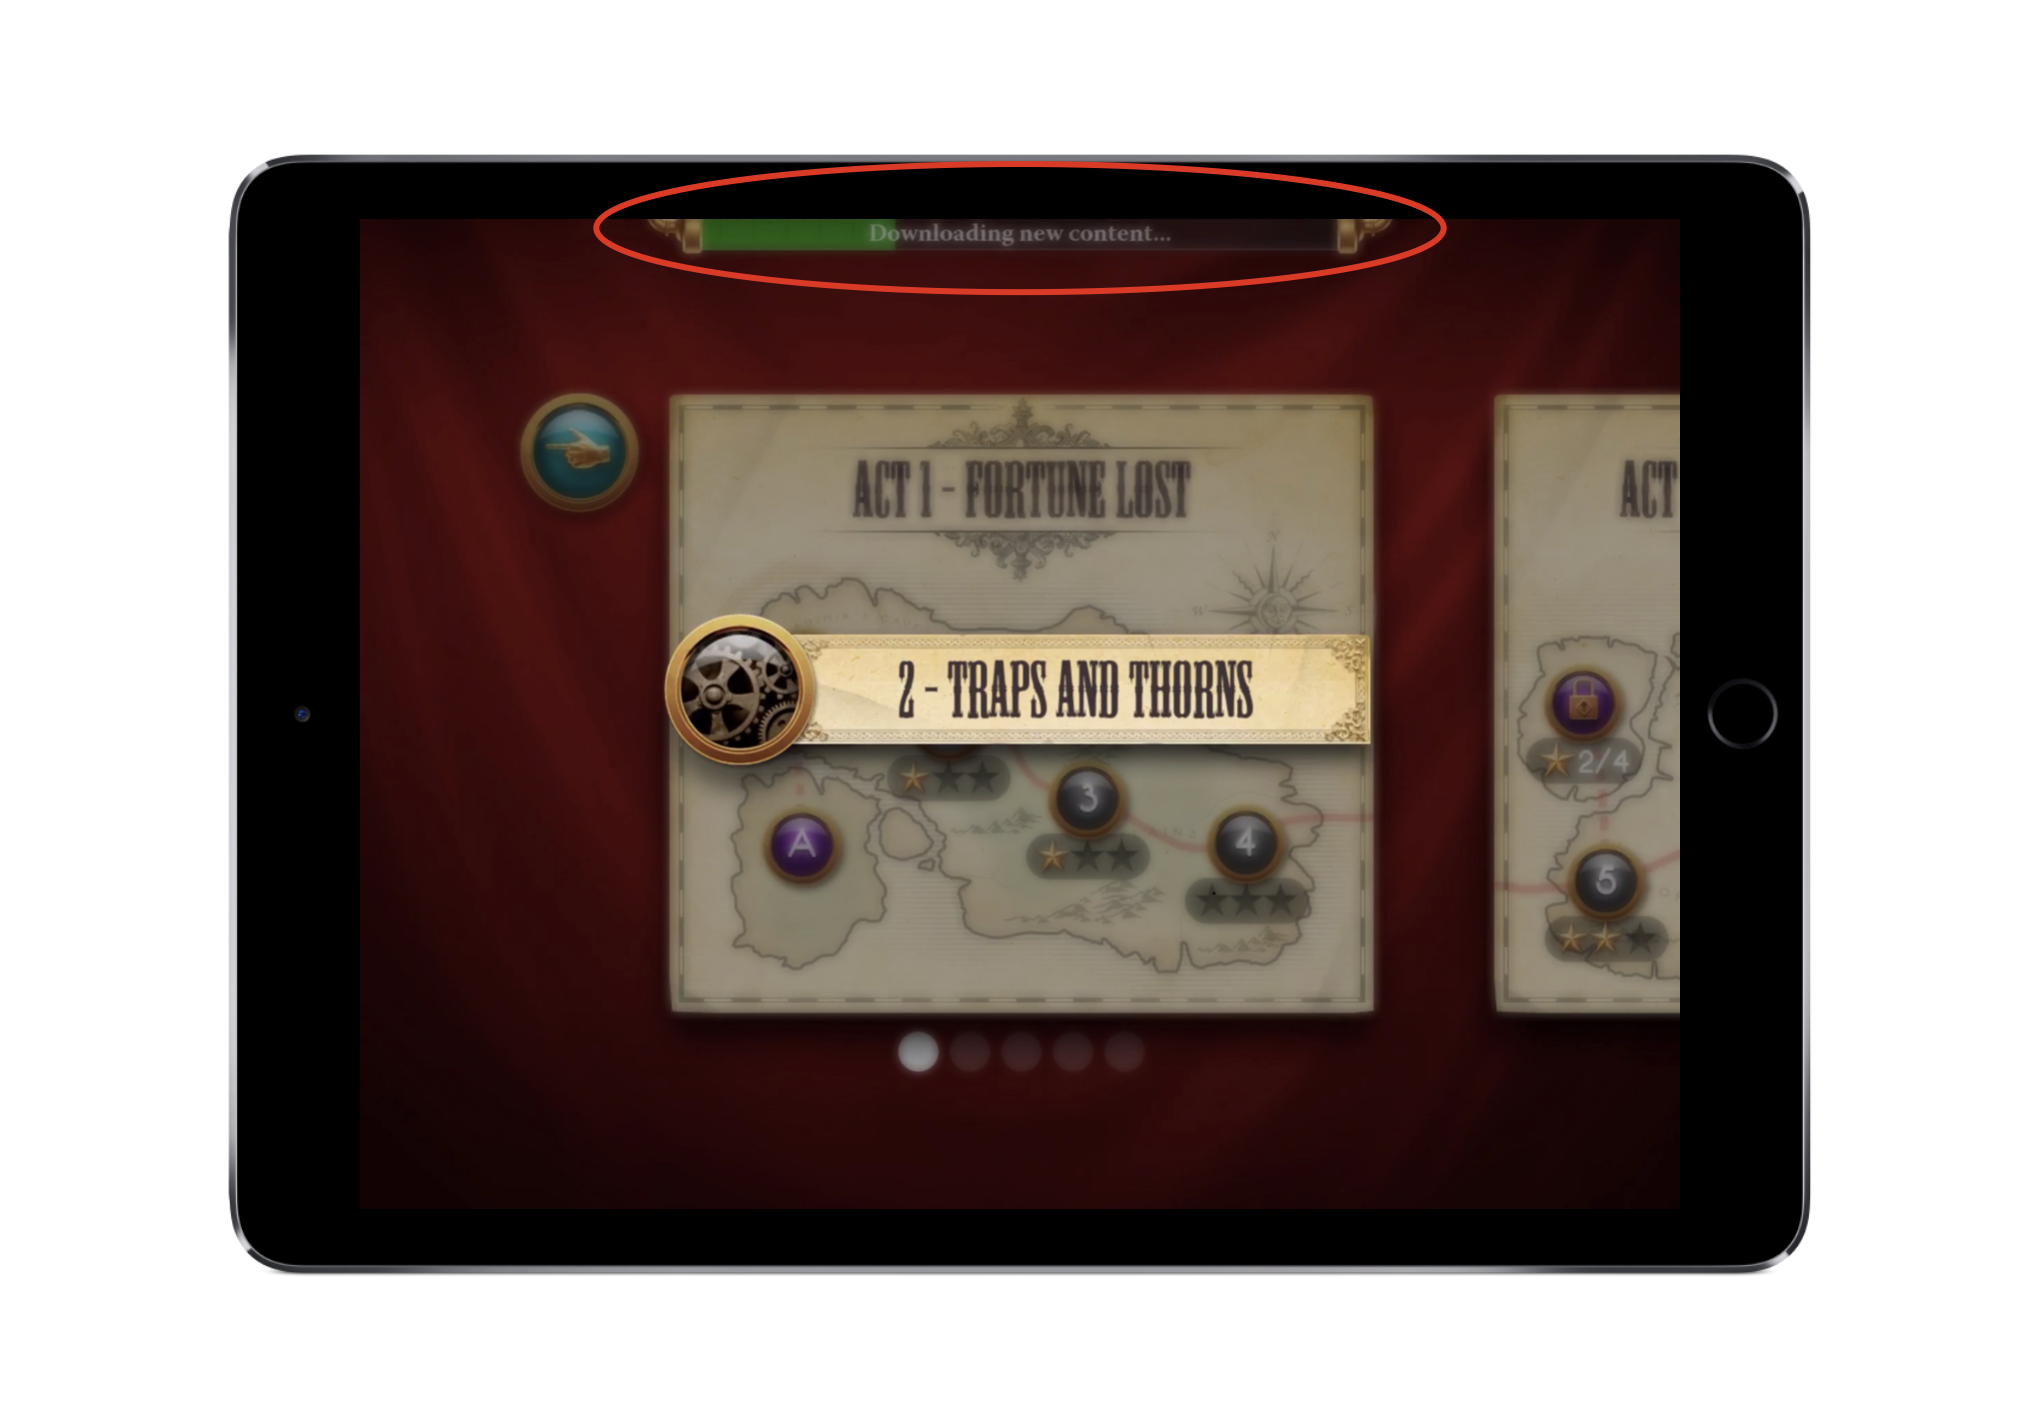 The game has downloaded enough content initially to allow users to play through the first few levels without delay.